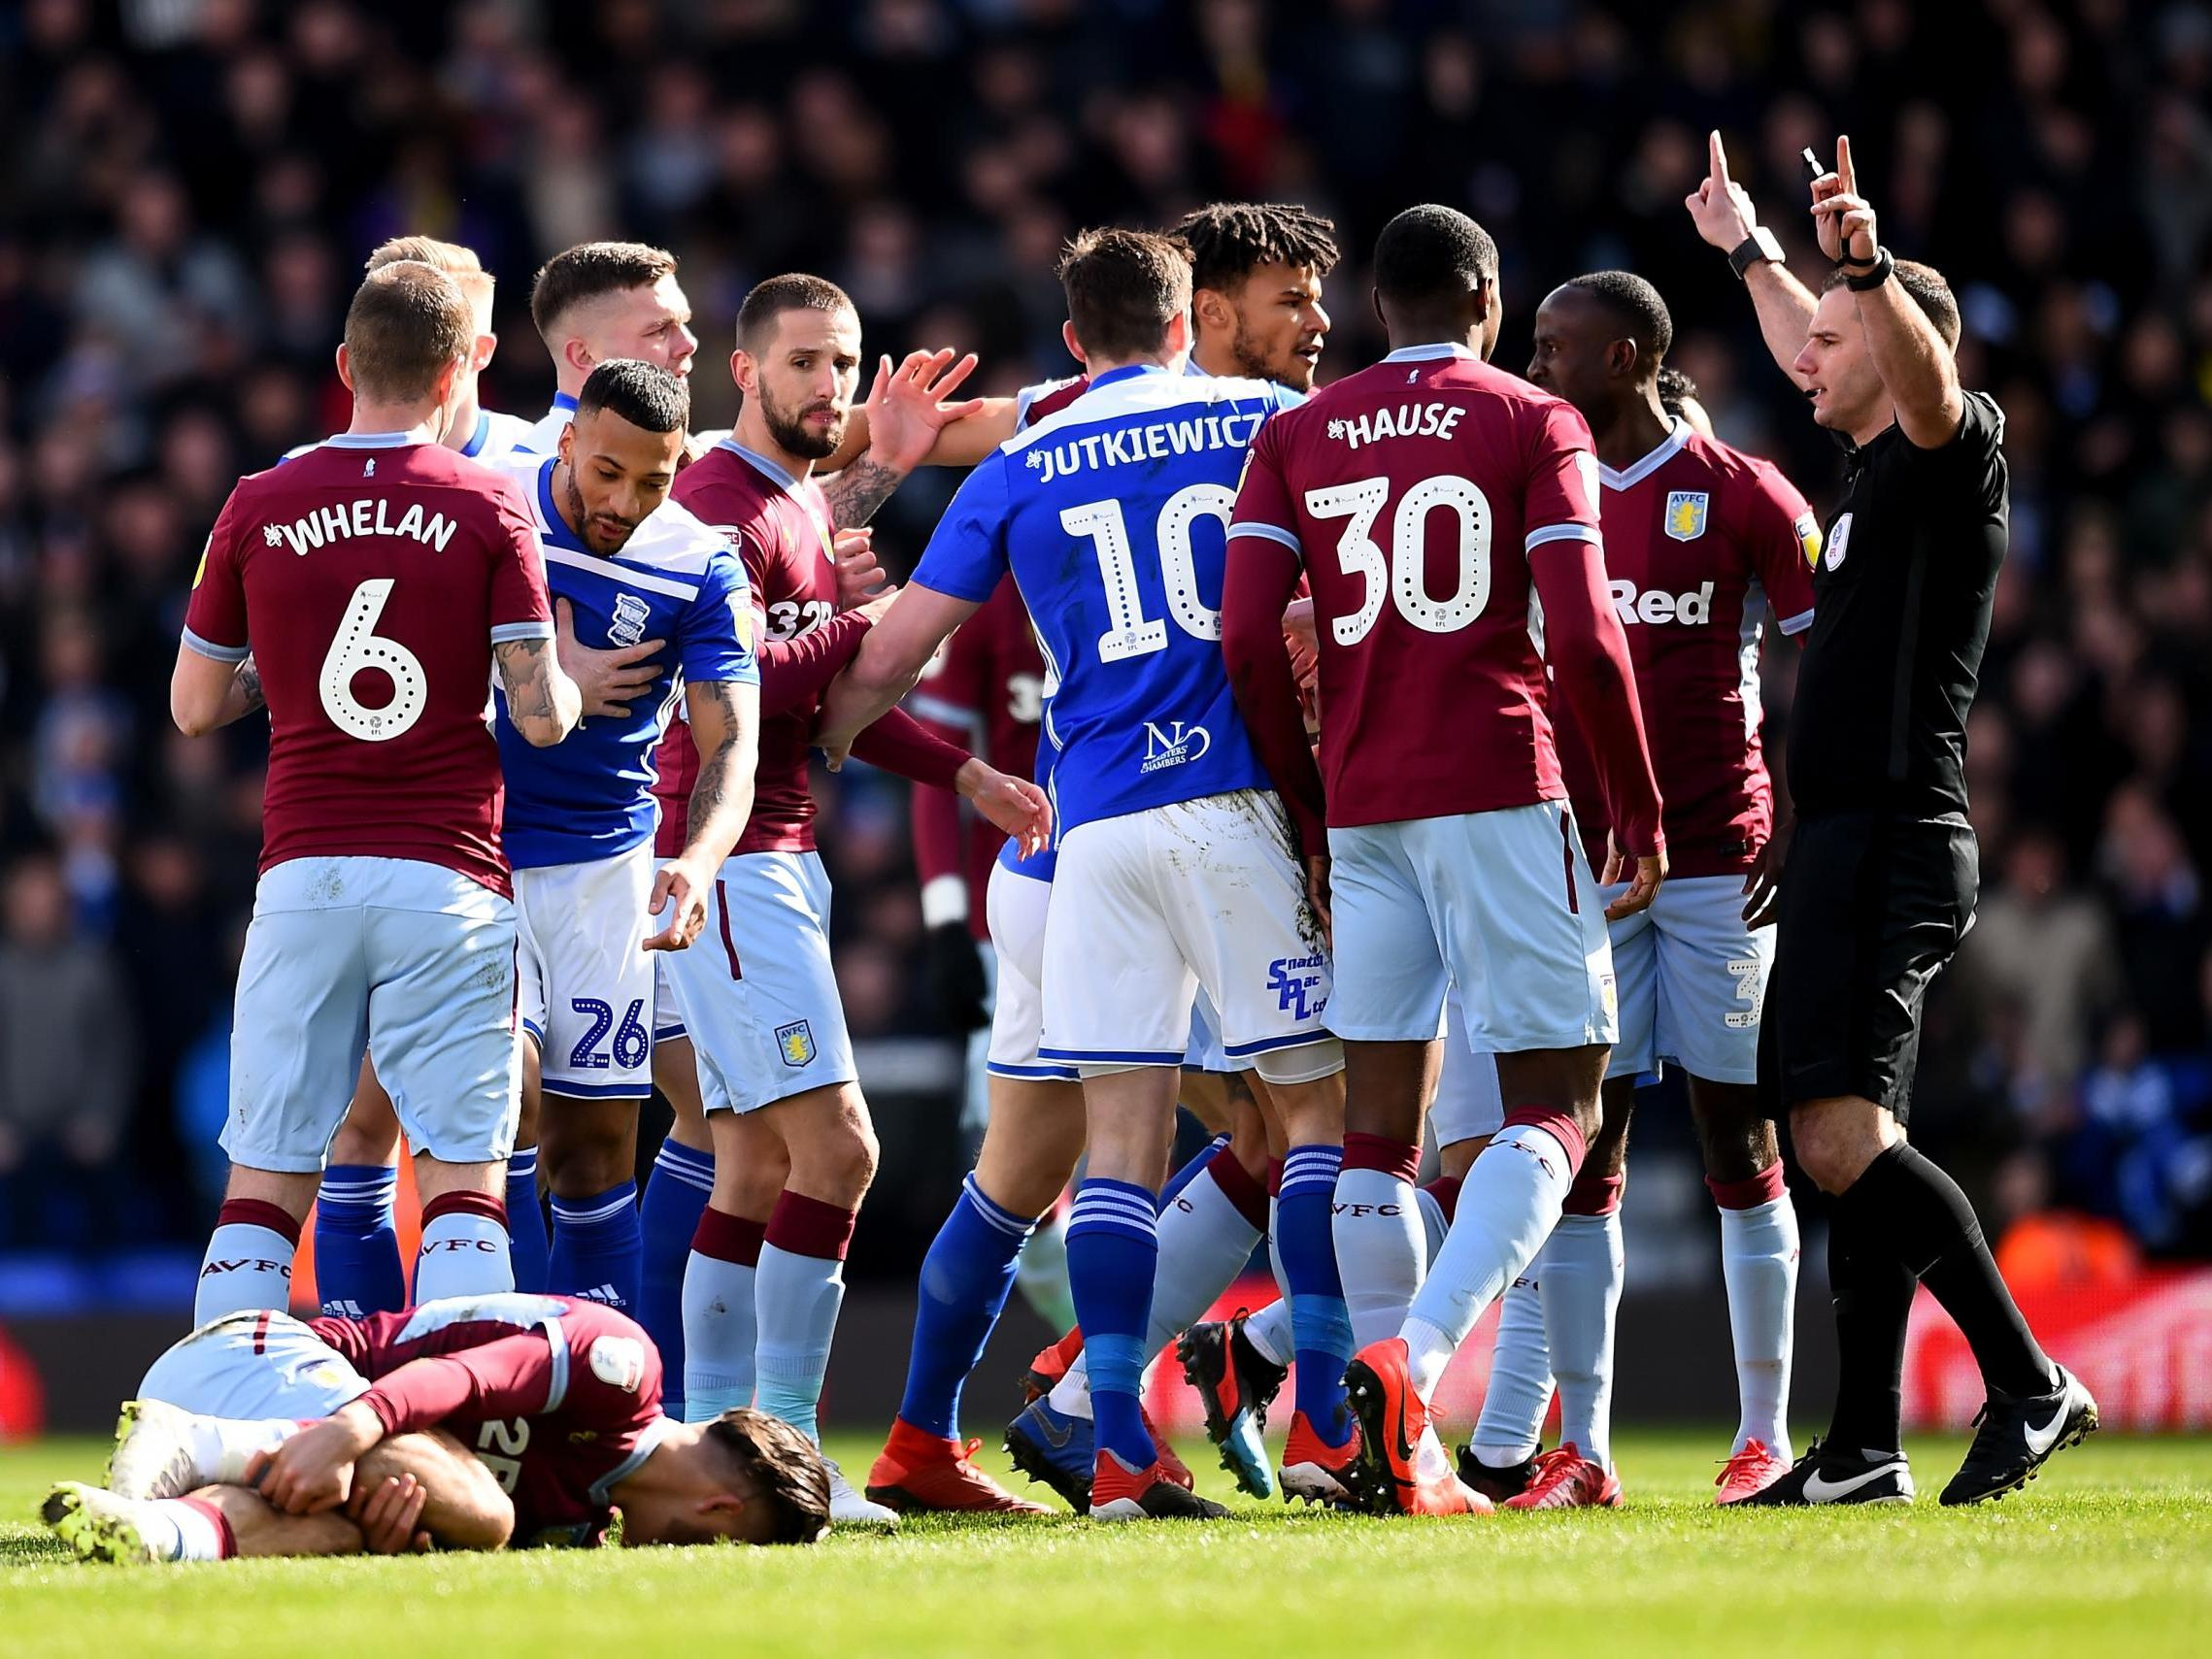 Birmingham City - latest news, breaking stories and comment